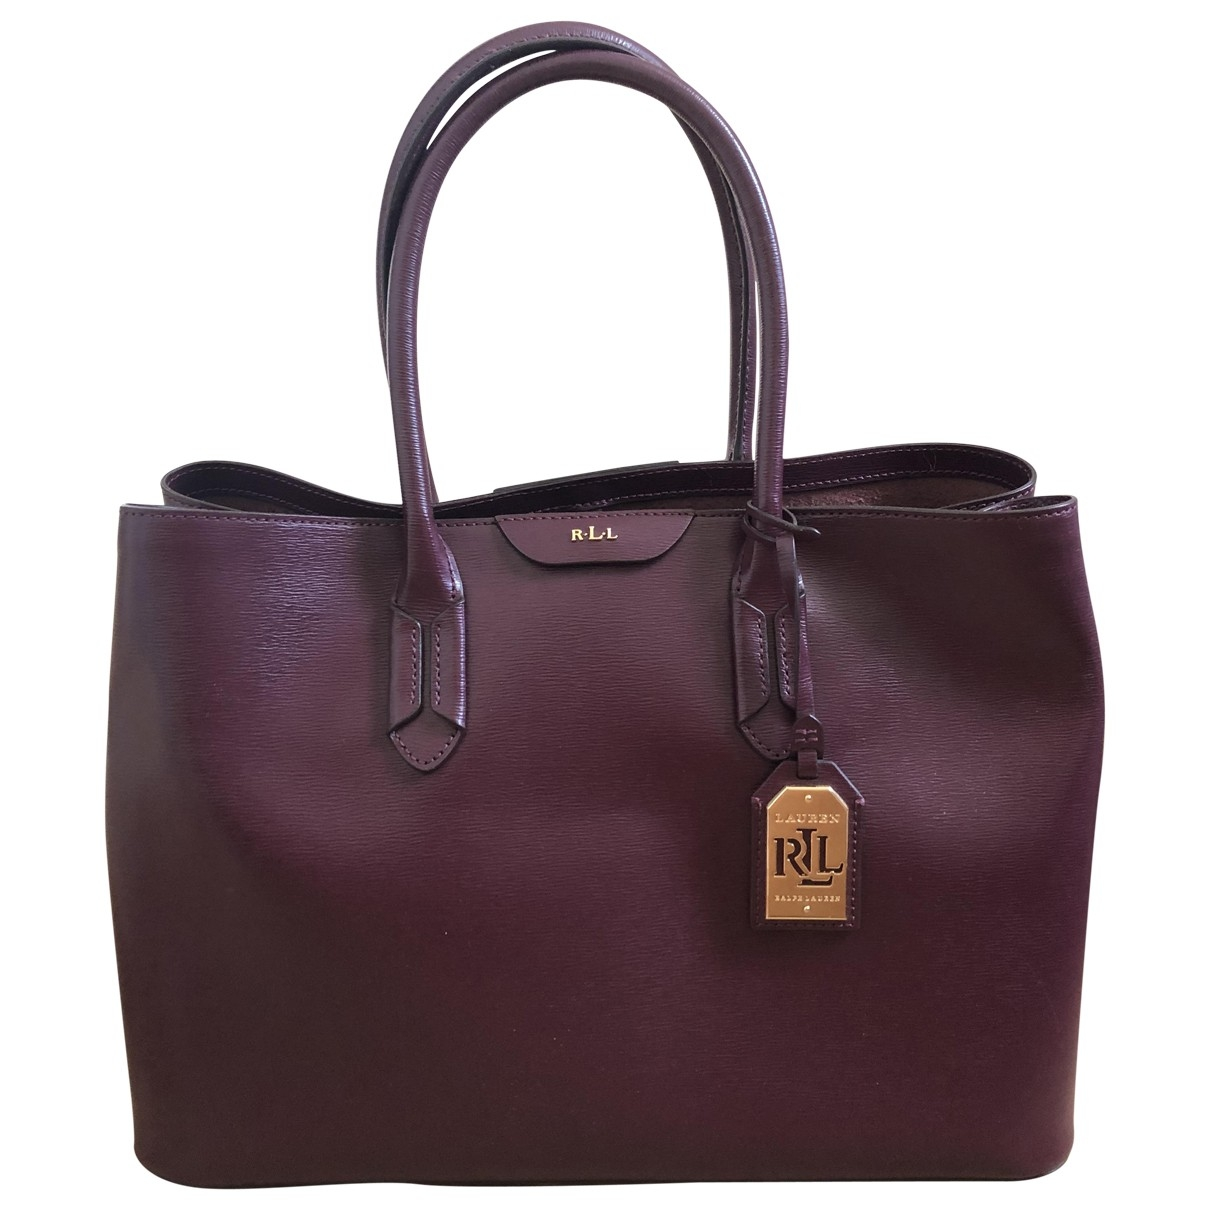 Lauren Ralph Lauren \N Burgundy Leather handbag for Women \N